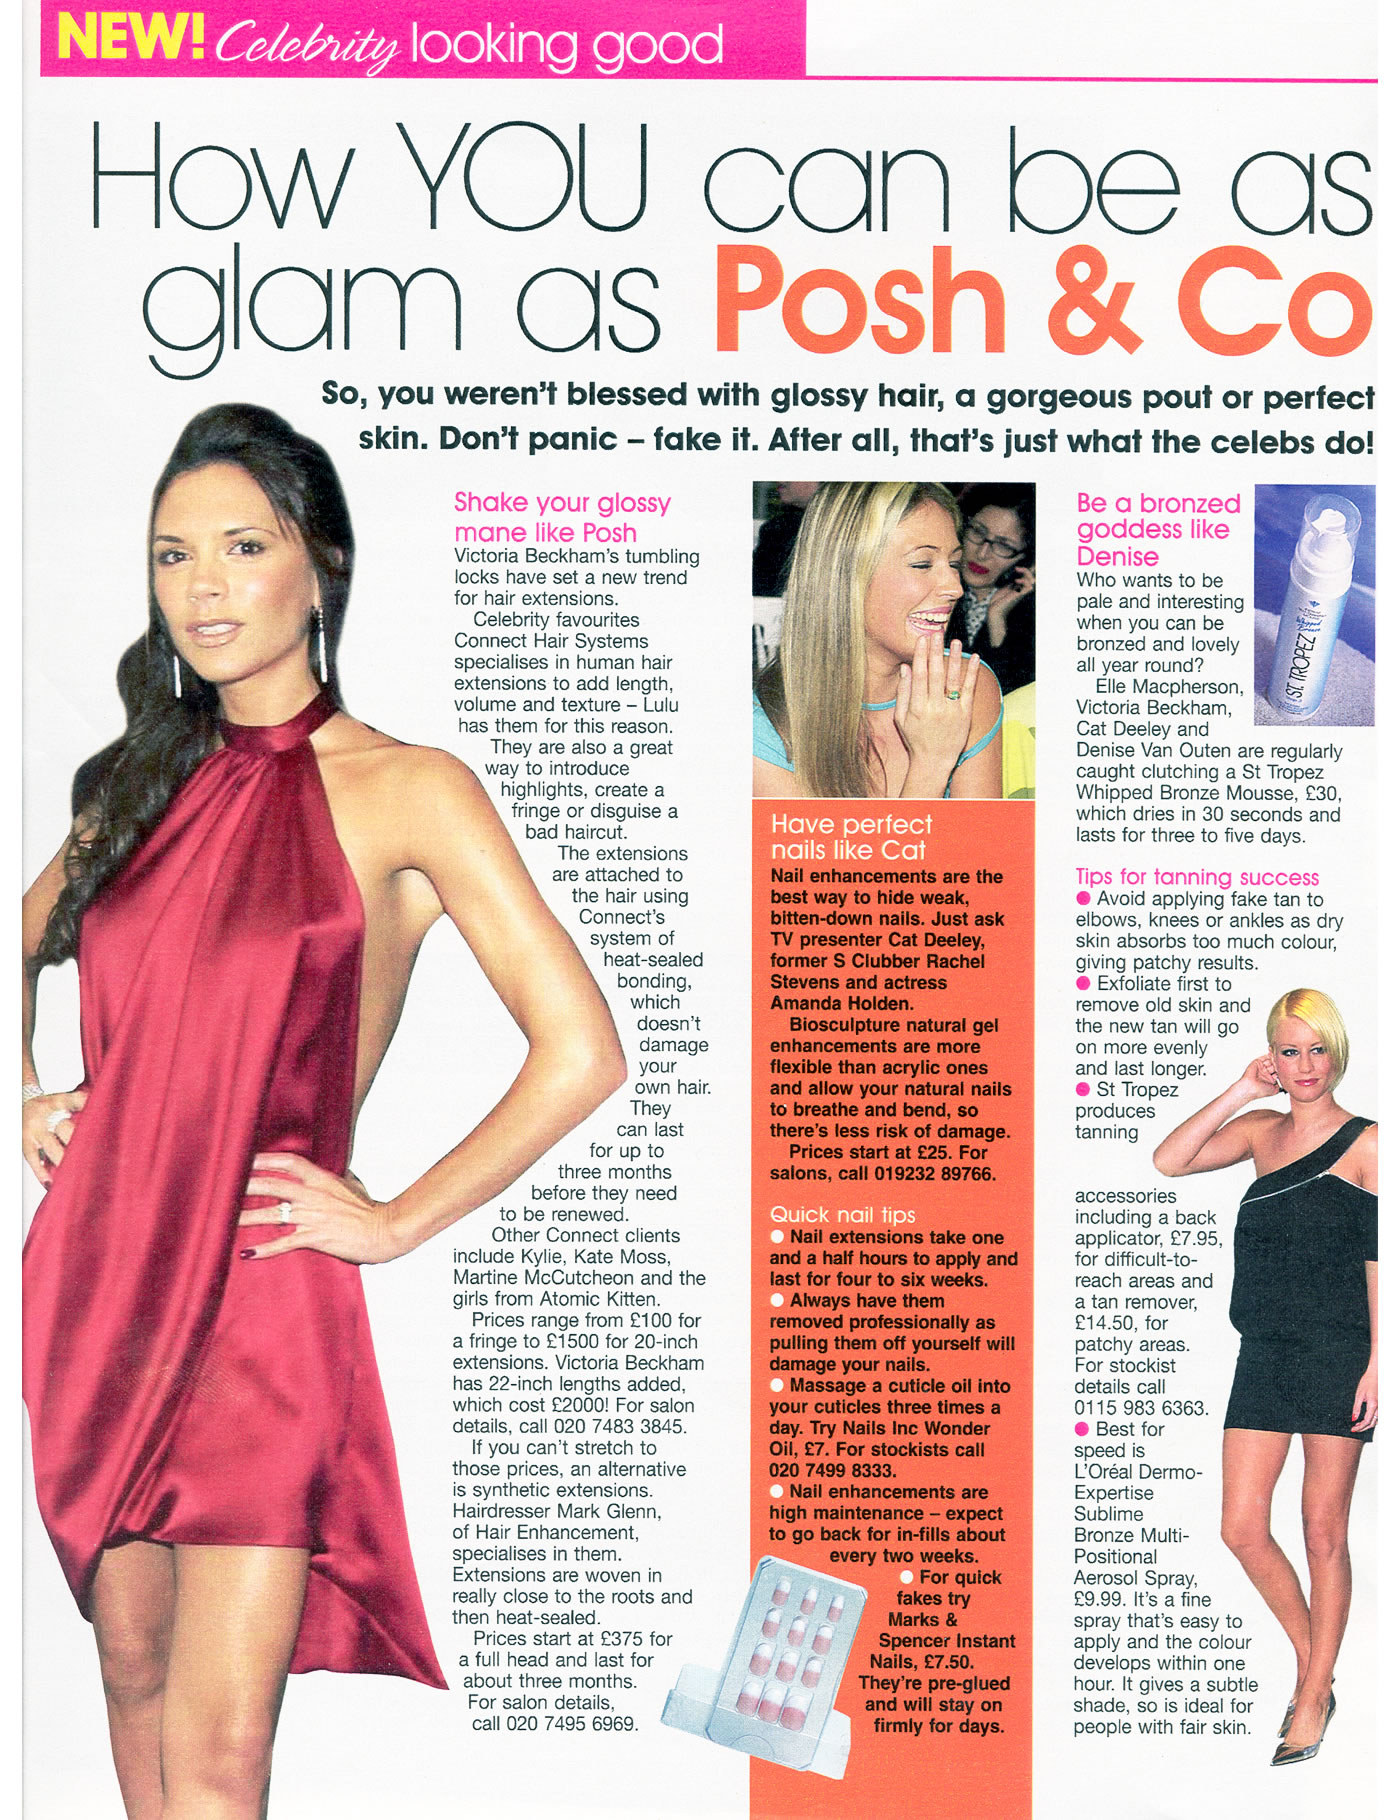 'How To Be As Glam As Posh & Co' - MG hair extensions in Bella Magazine